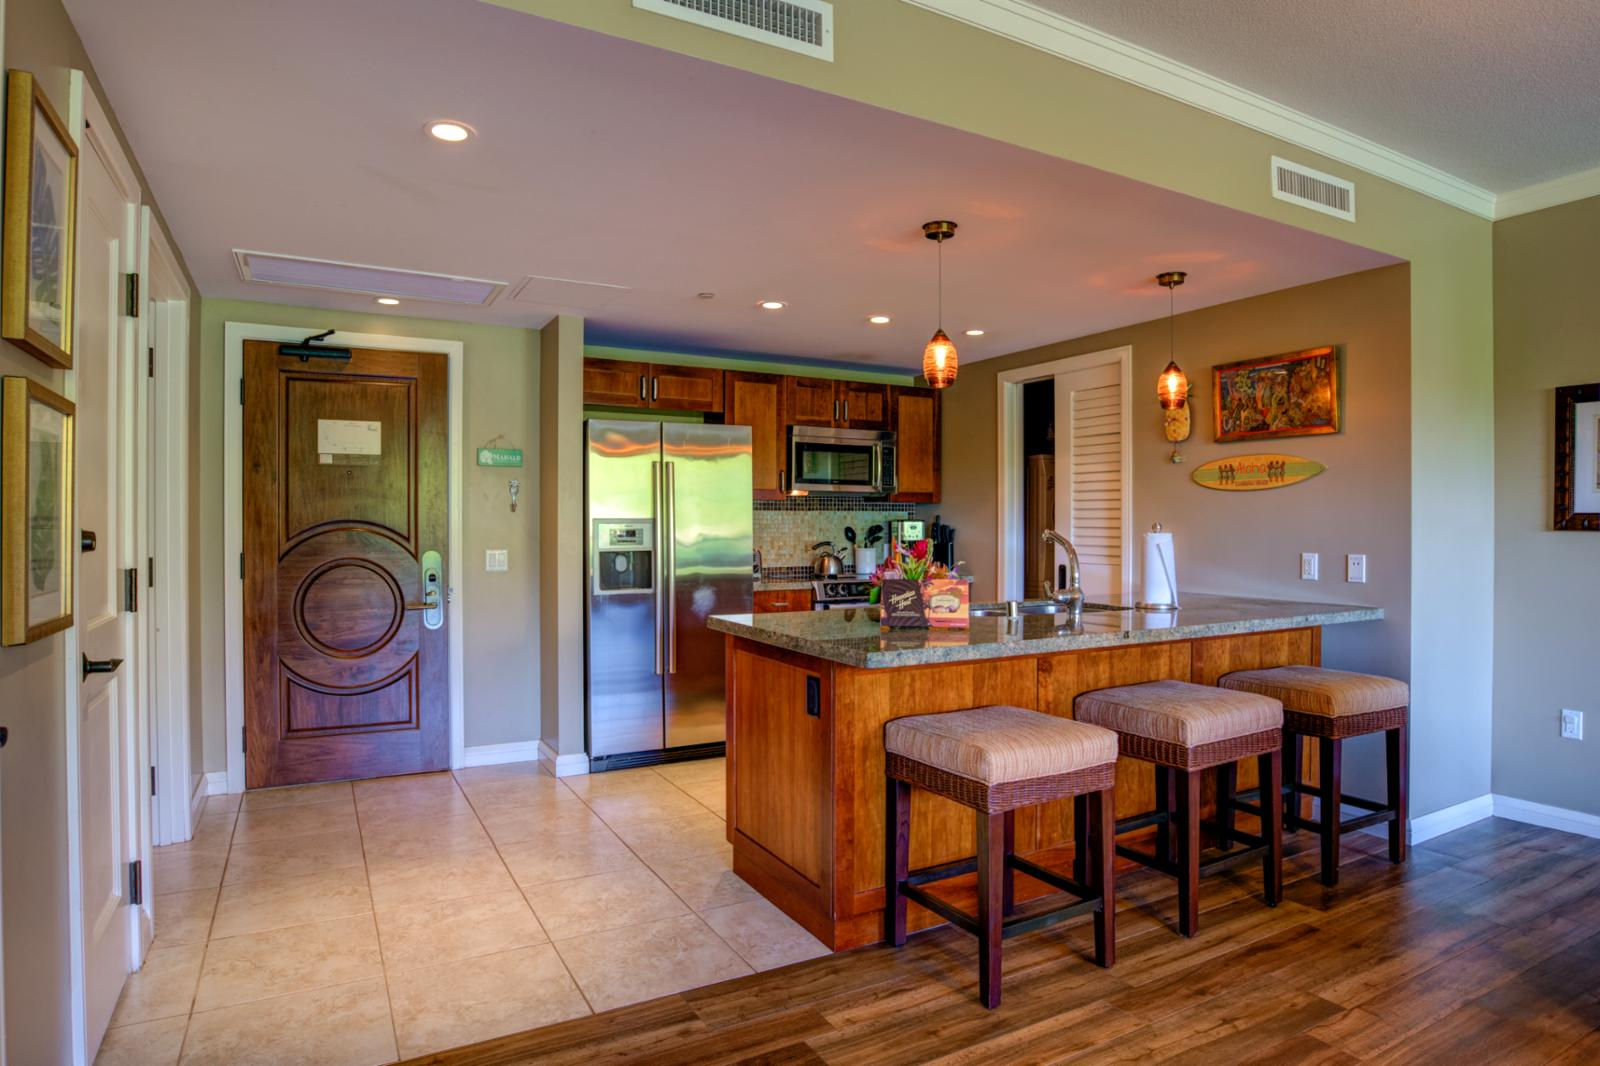 LARGE kitchen that comes fully stocked for nightly meals